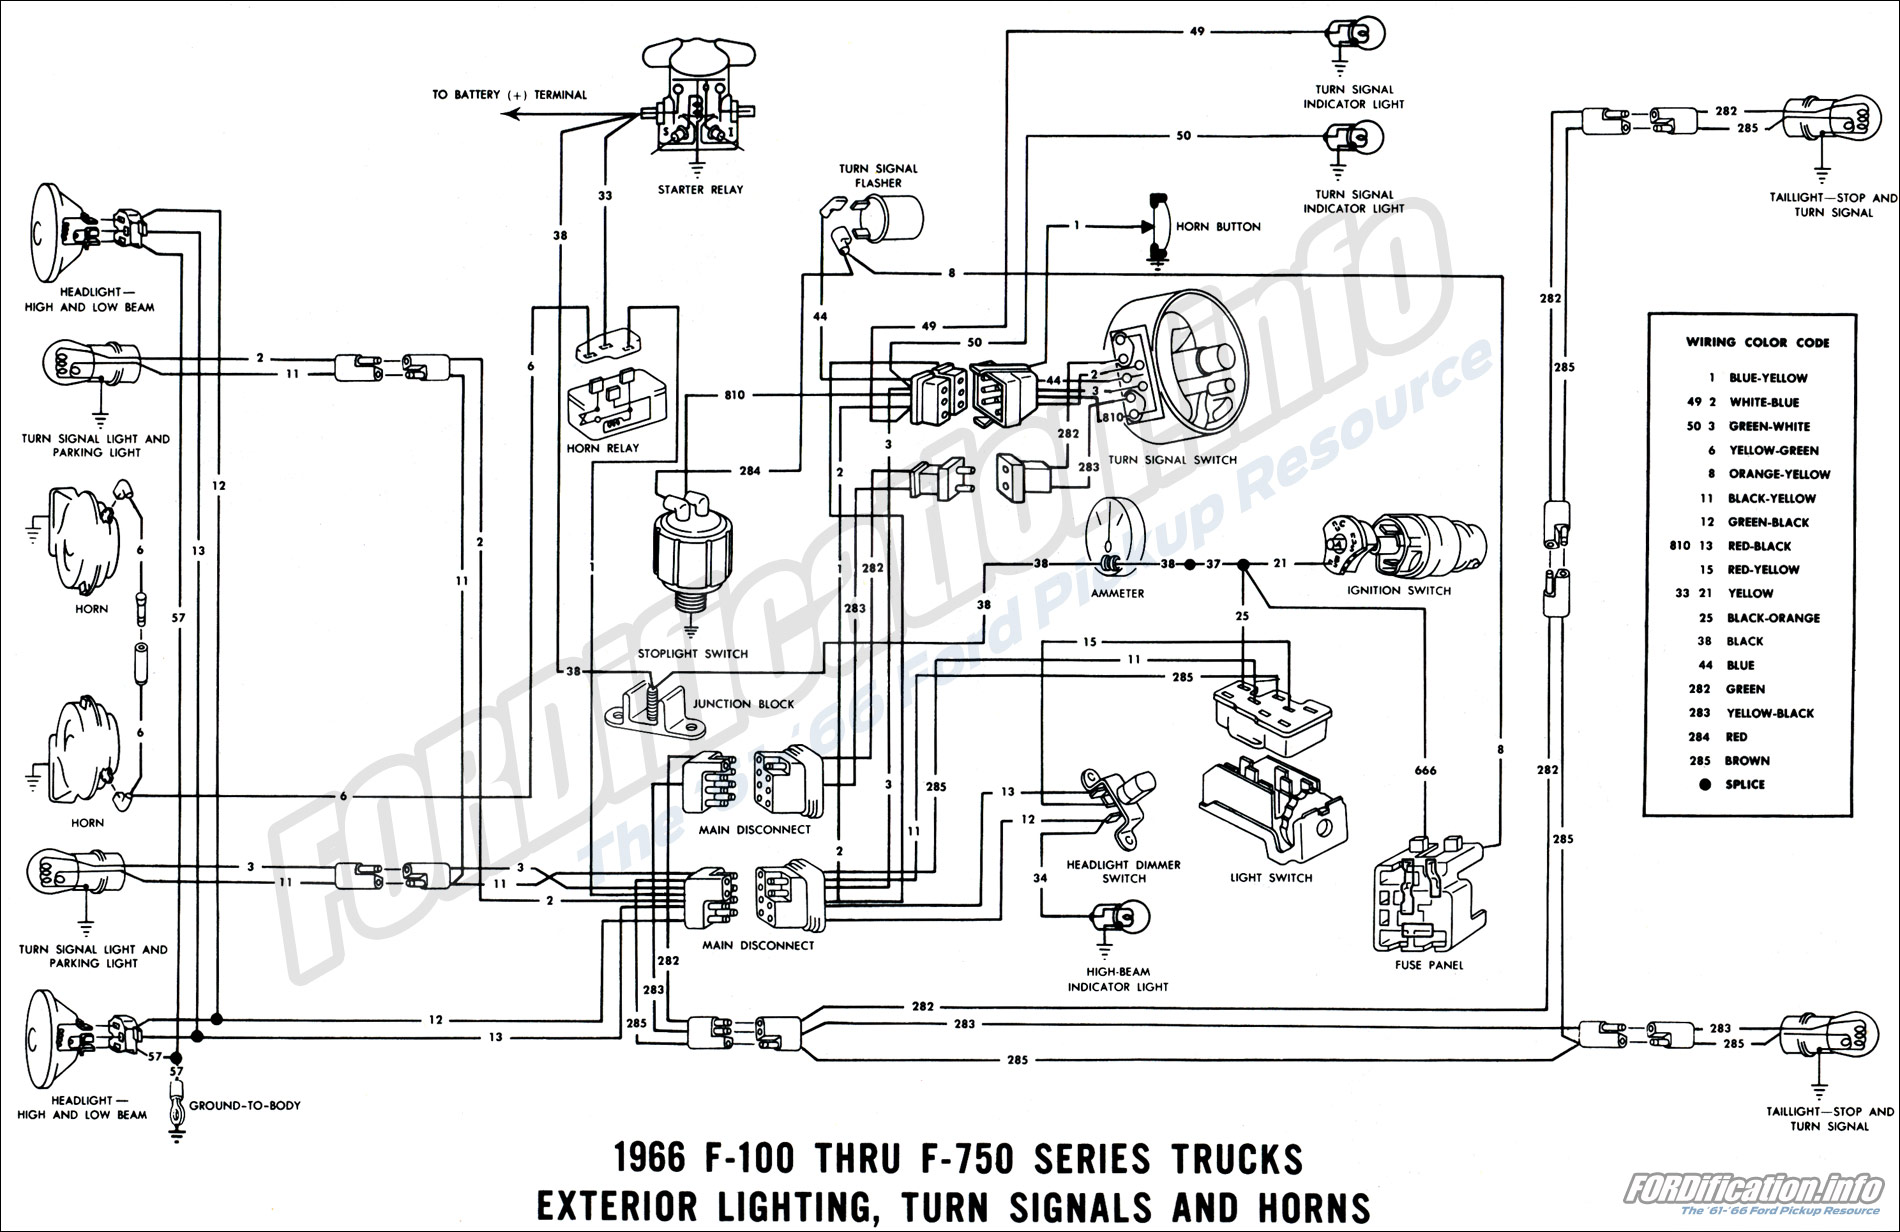 [SCHEMATICS_4US]  1966 Ford Truck Wiring Diagrams - FORDification.info - The '61-'66 Ford  Pickup Resource | 1966 Ford F100 Engine Wiring Diagram Free Picture |  | FORDification.info